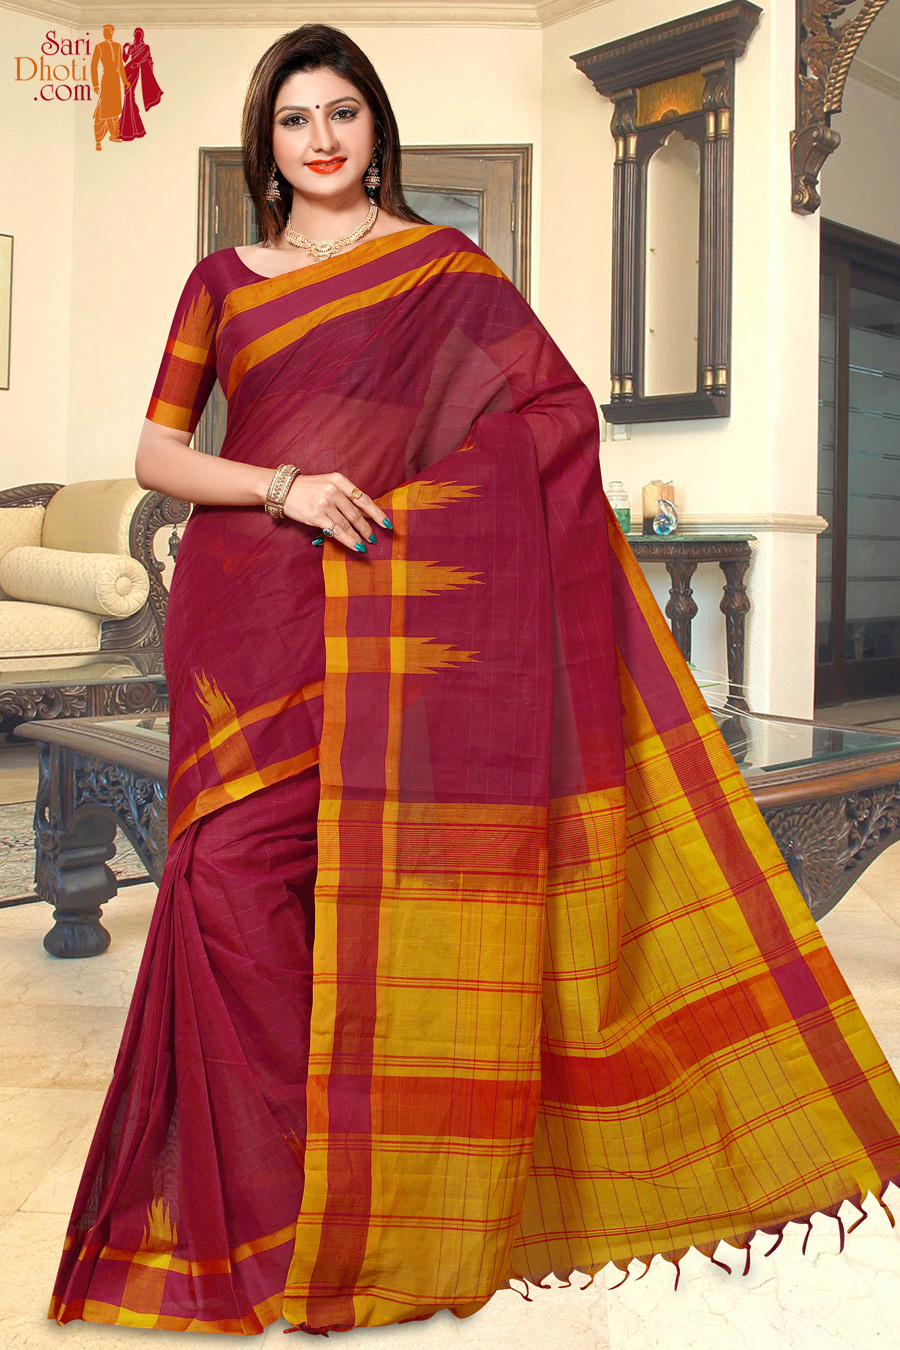 Kanchi Cotton 2750